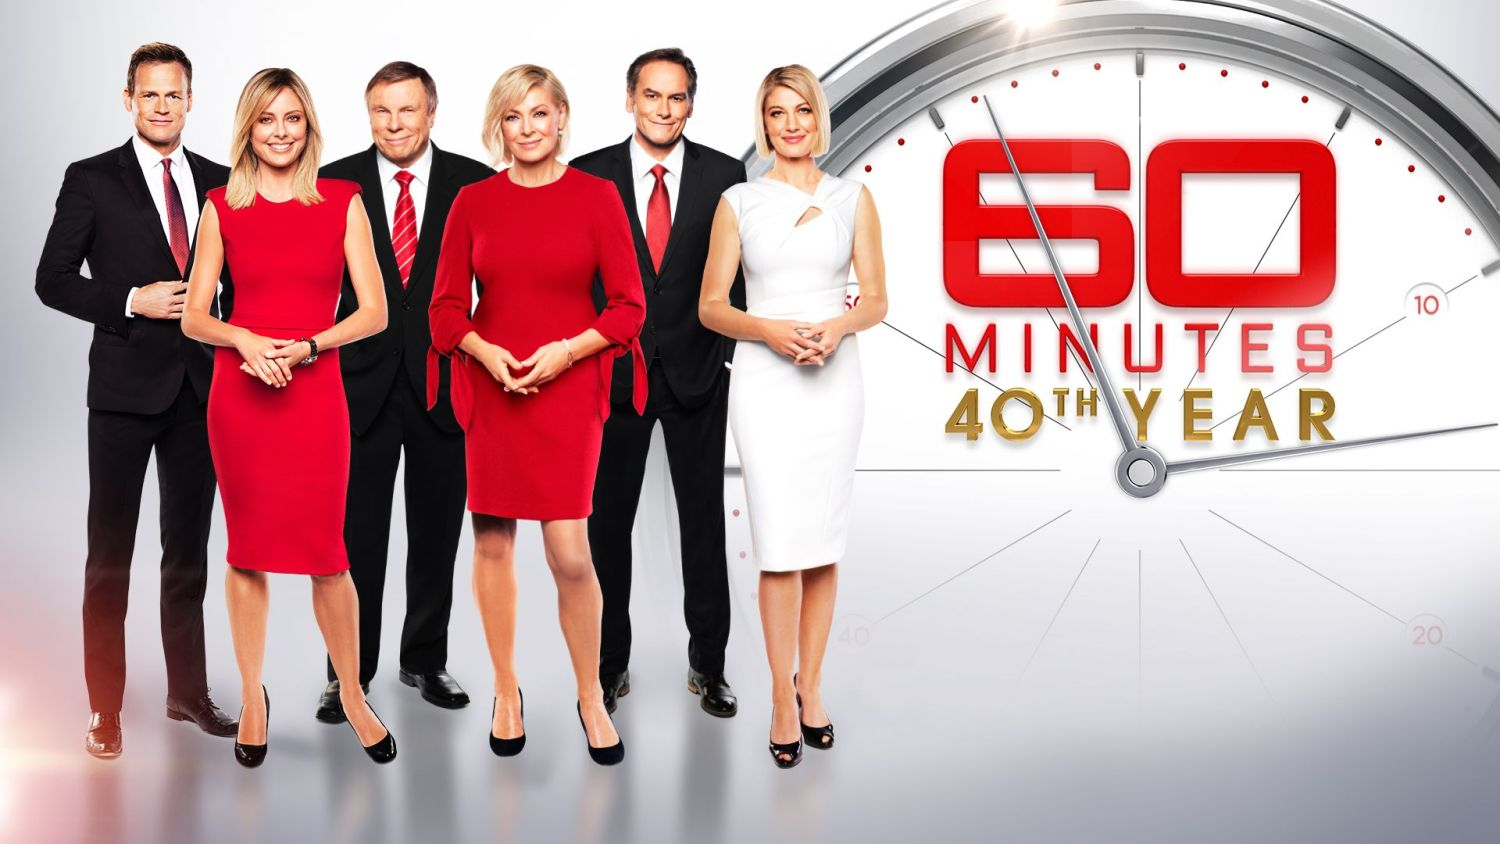 60 MINUTES Australia broadcasts an infomercial for Bioss Stem Cells